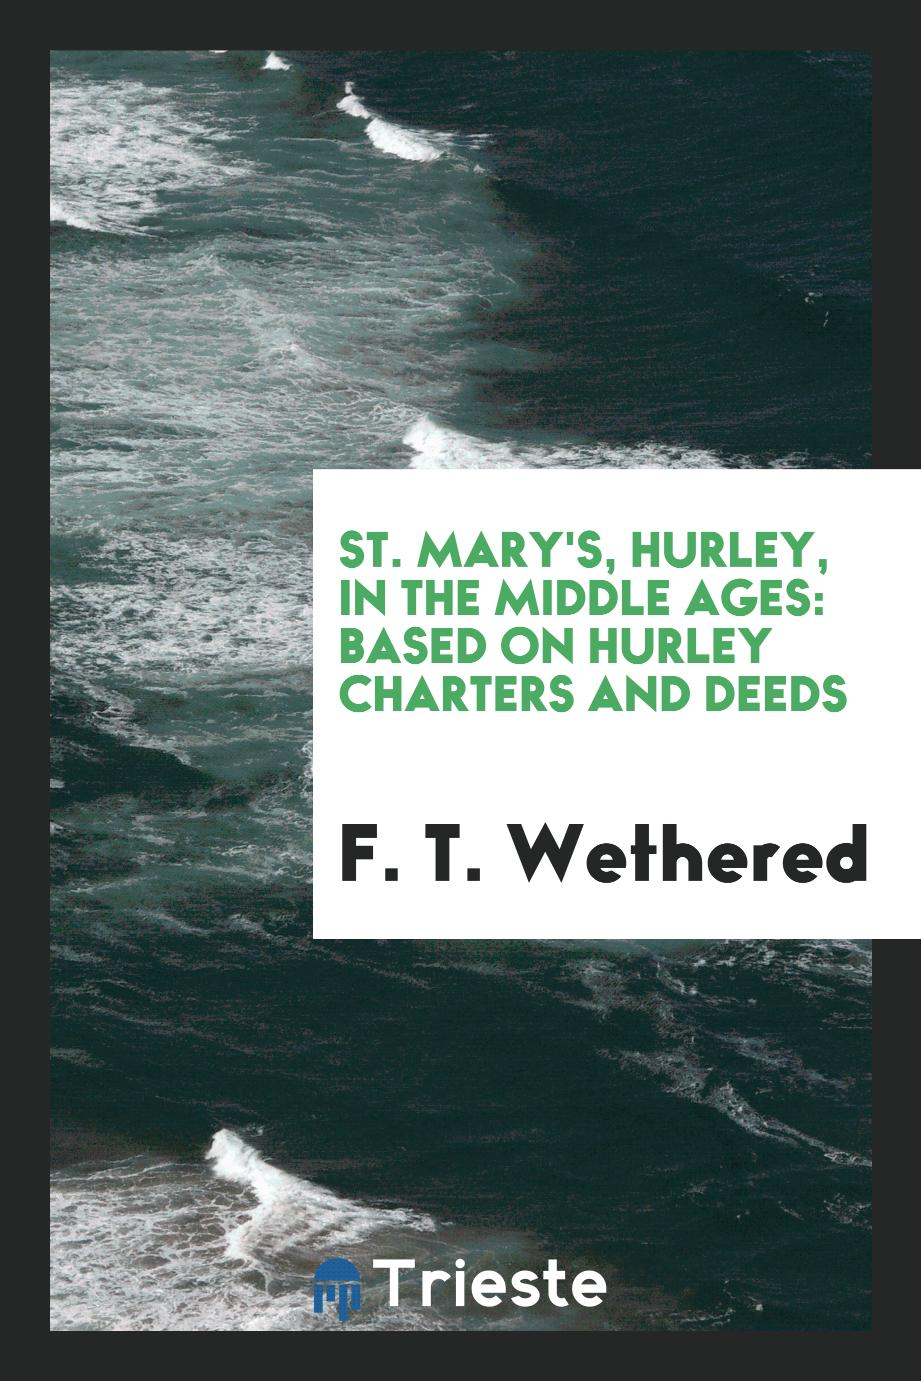 St. Mary's, Hurley, in the Middle Ages: Based on Hurley Charters and Deeds